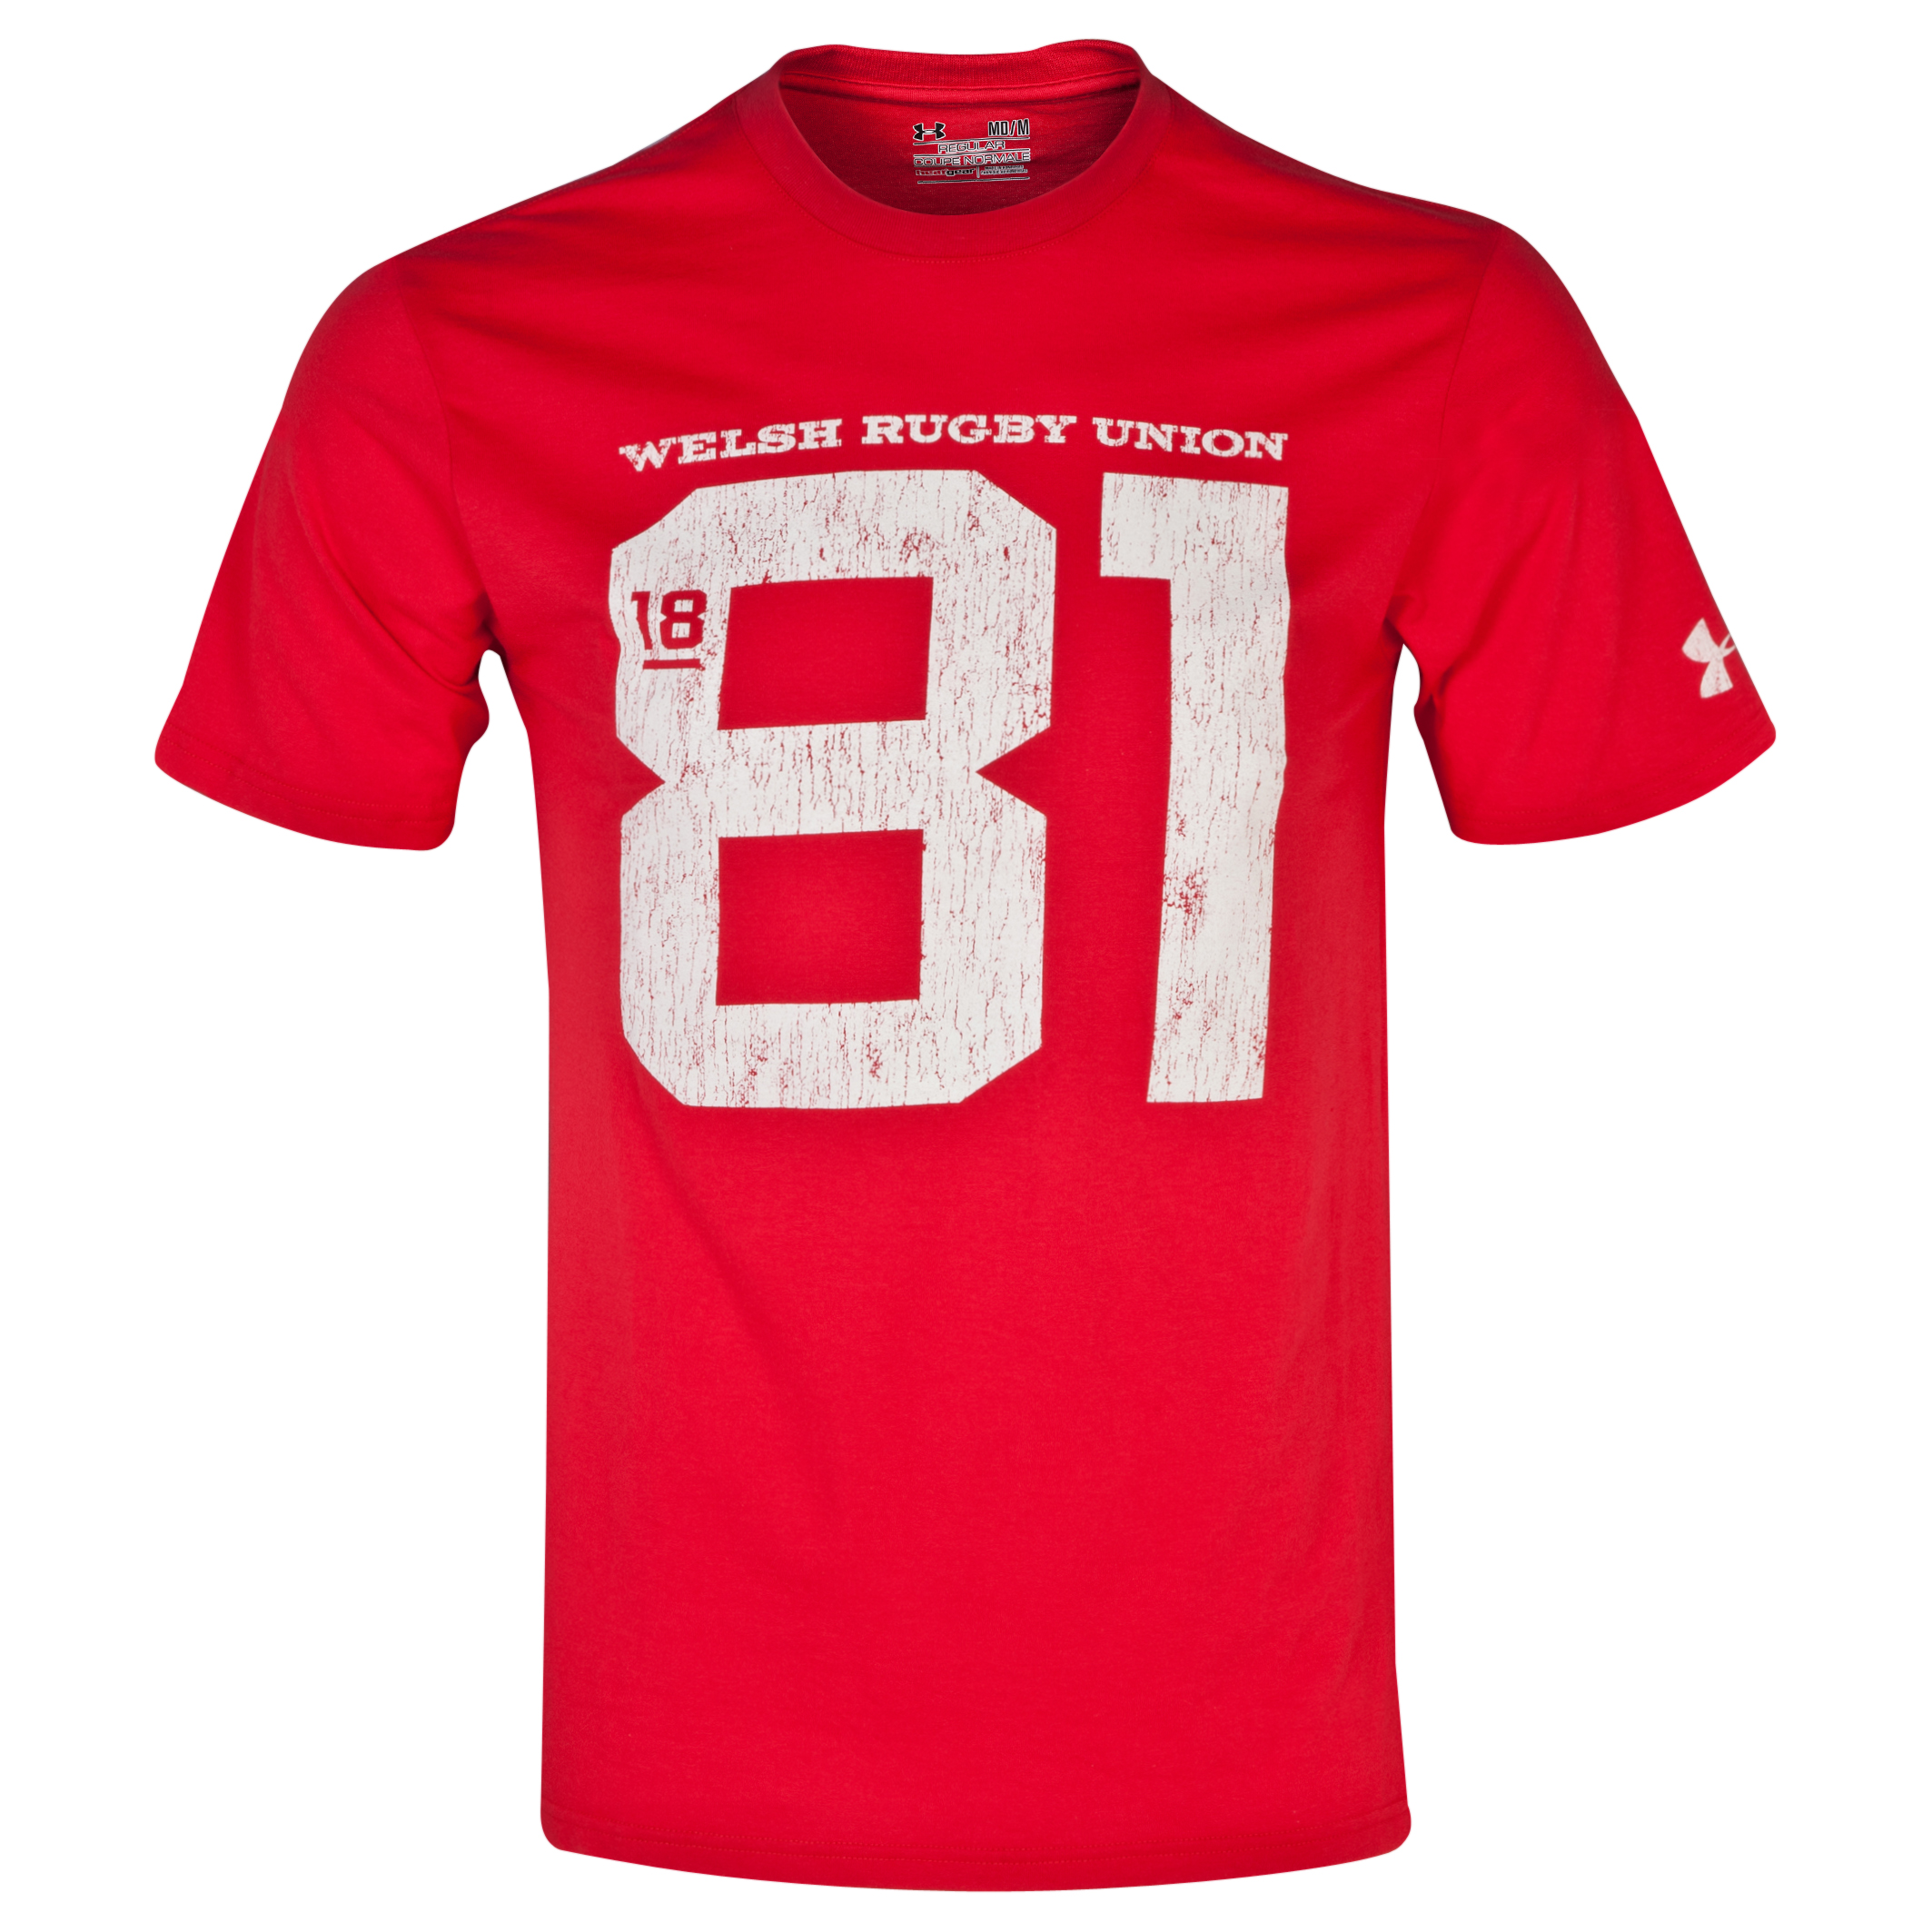 Wales Rugby Union 81 T-Shirt - Red/STN